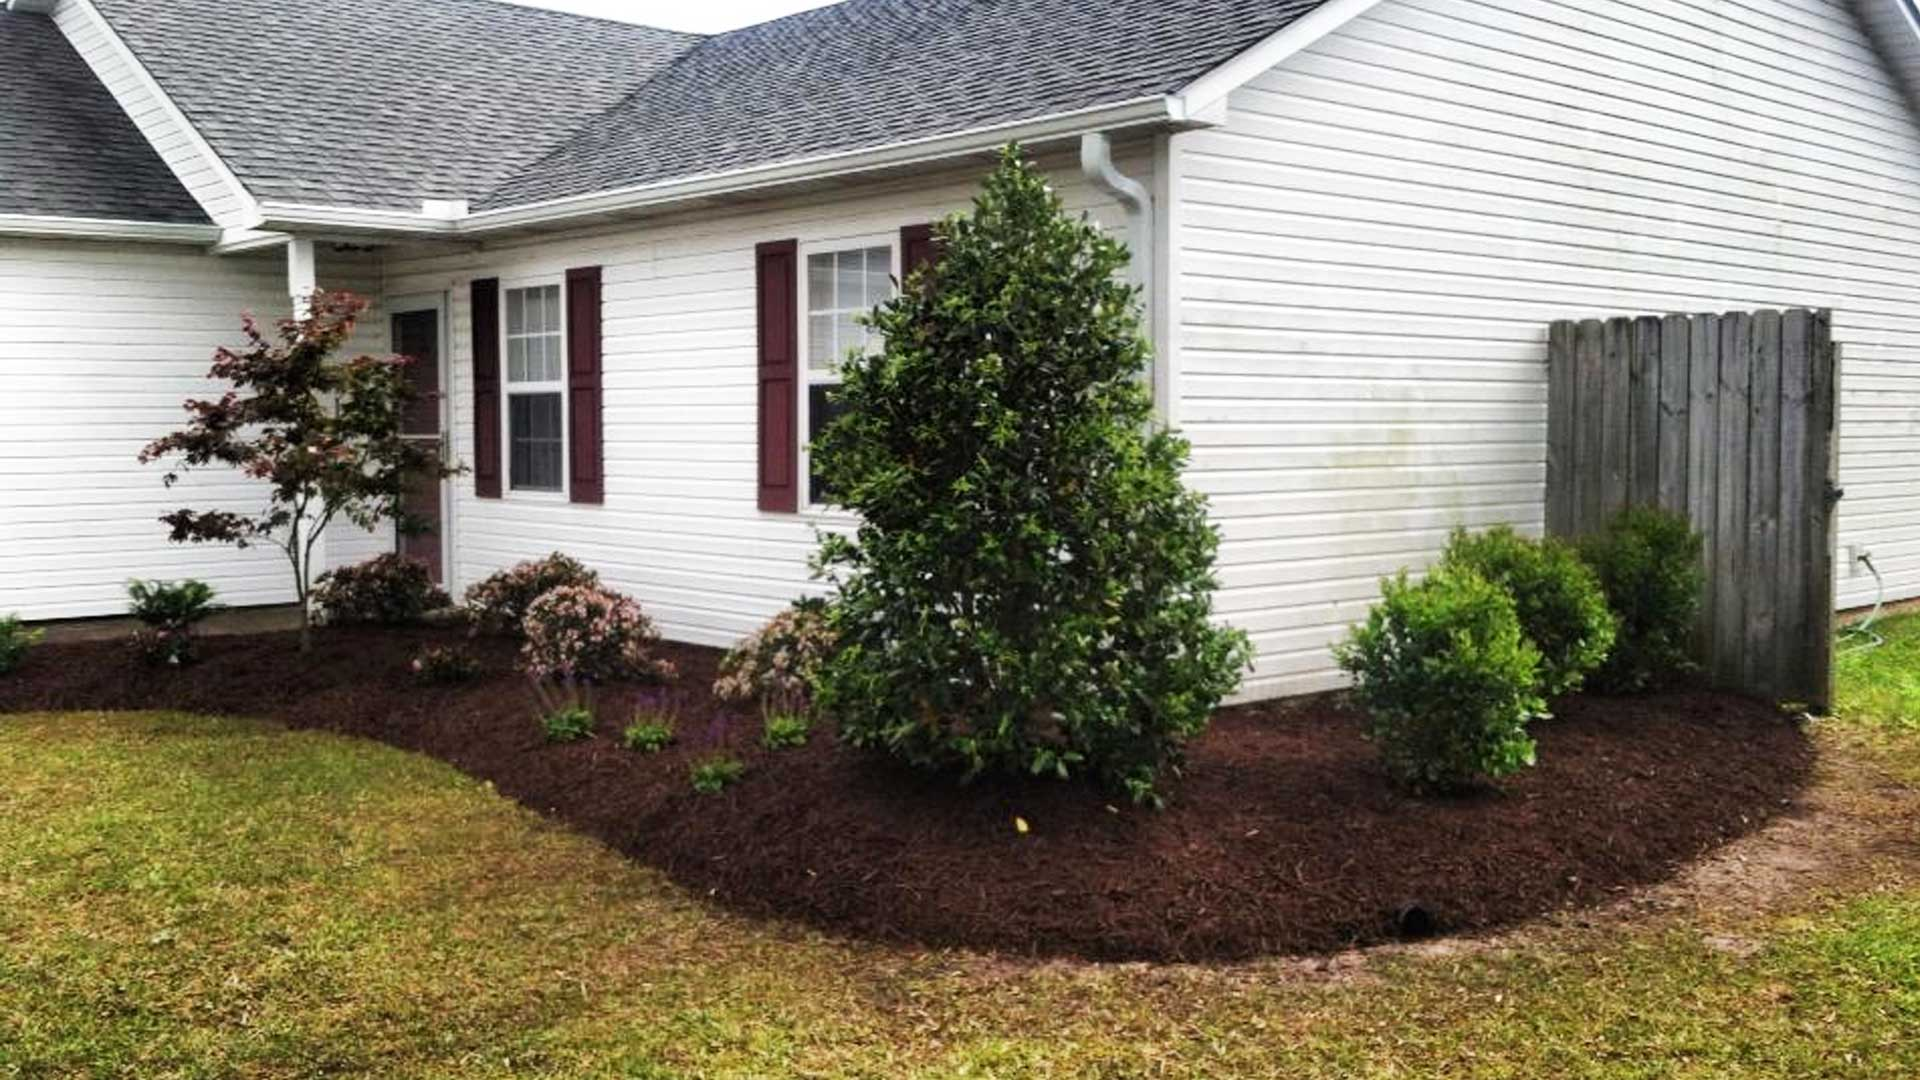 New landscape design and installation. We installed new plants, shrubs, small tree, & fresh mulch at a home in Newport, NC.